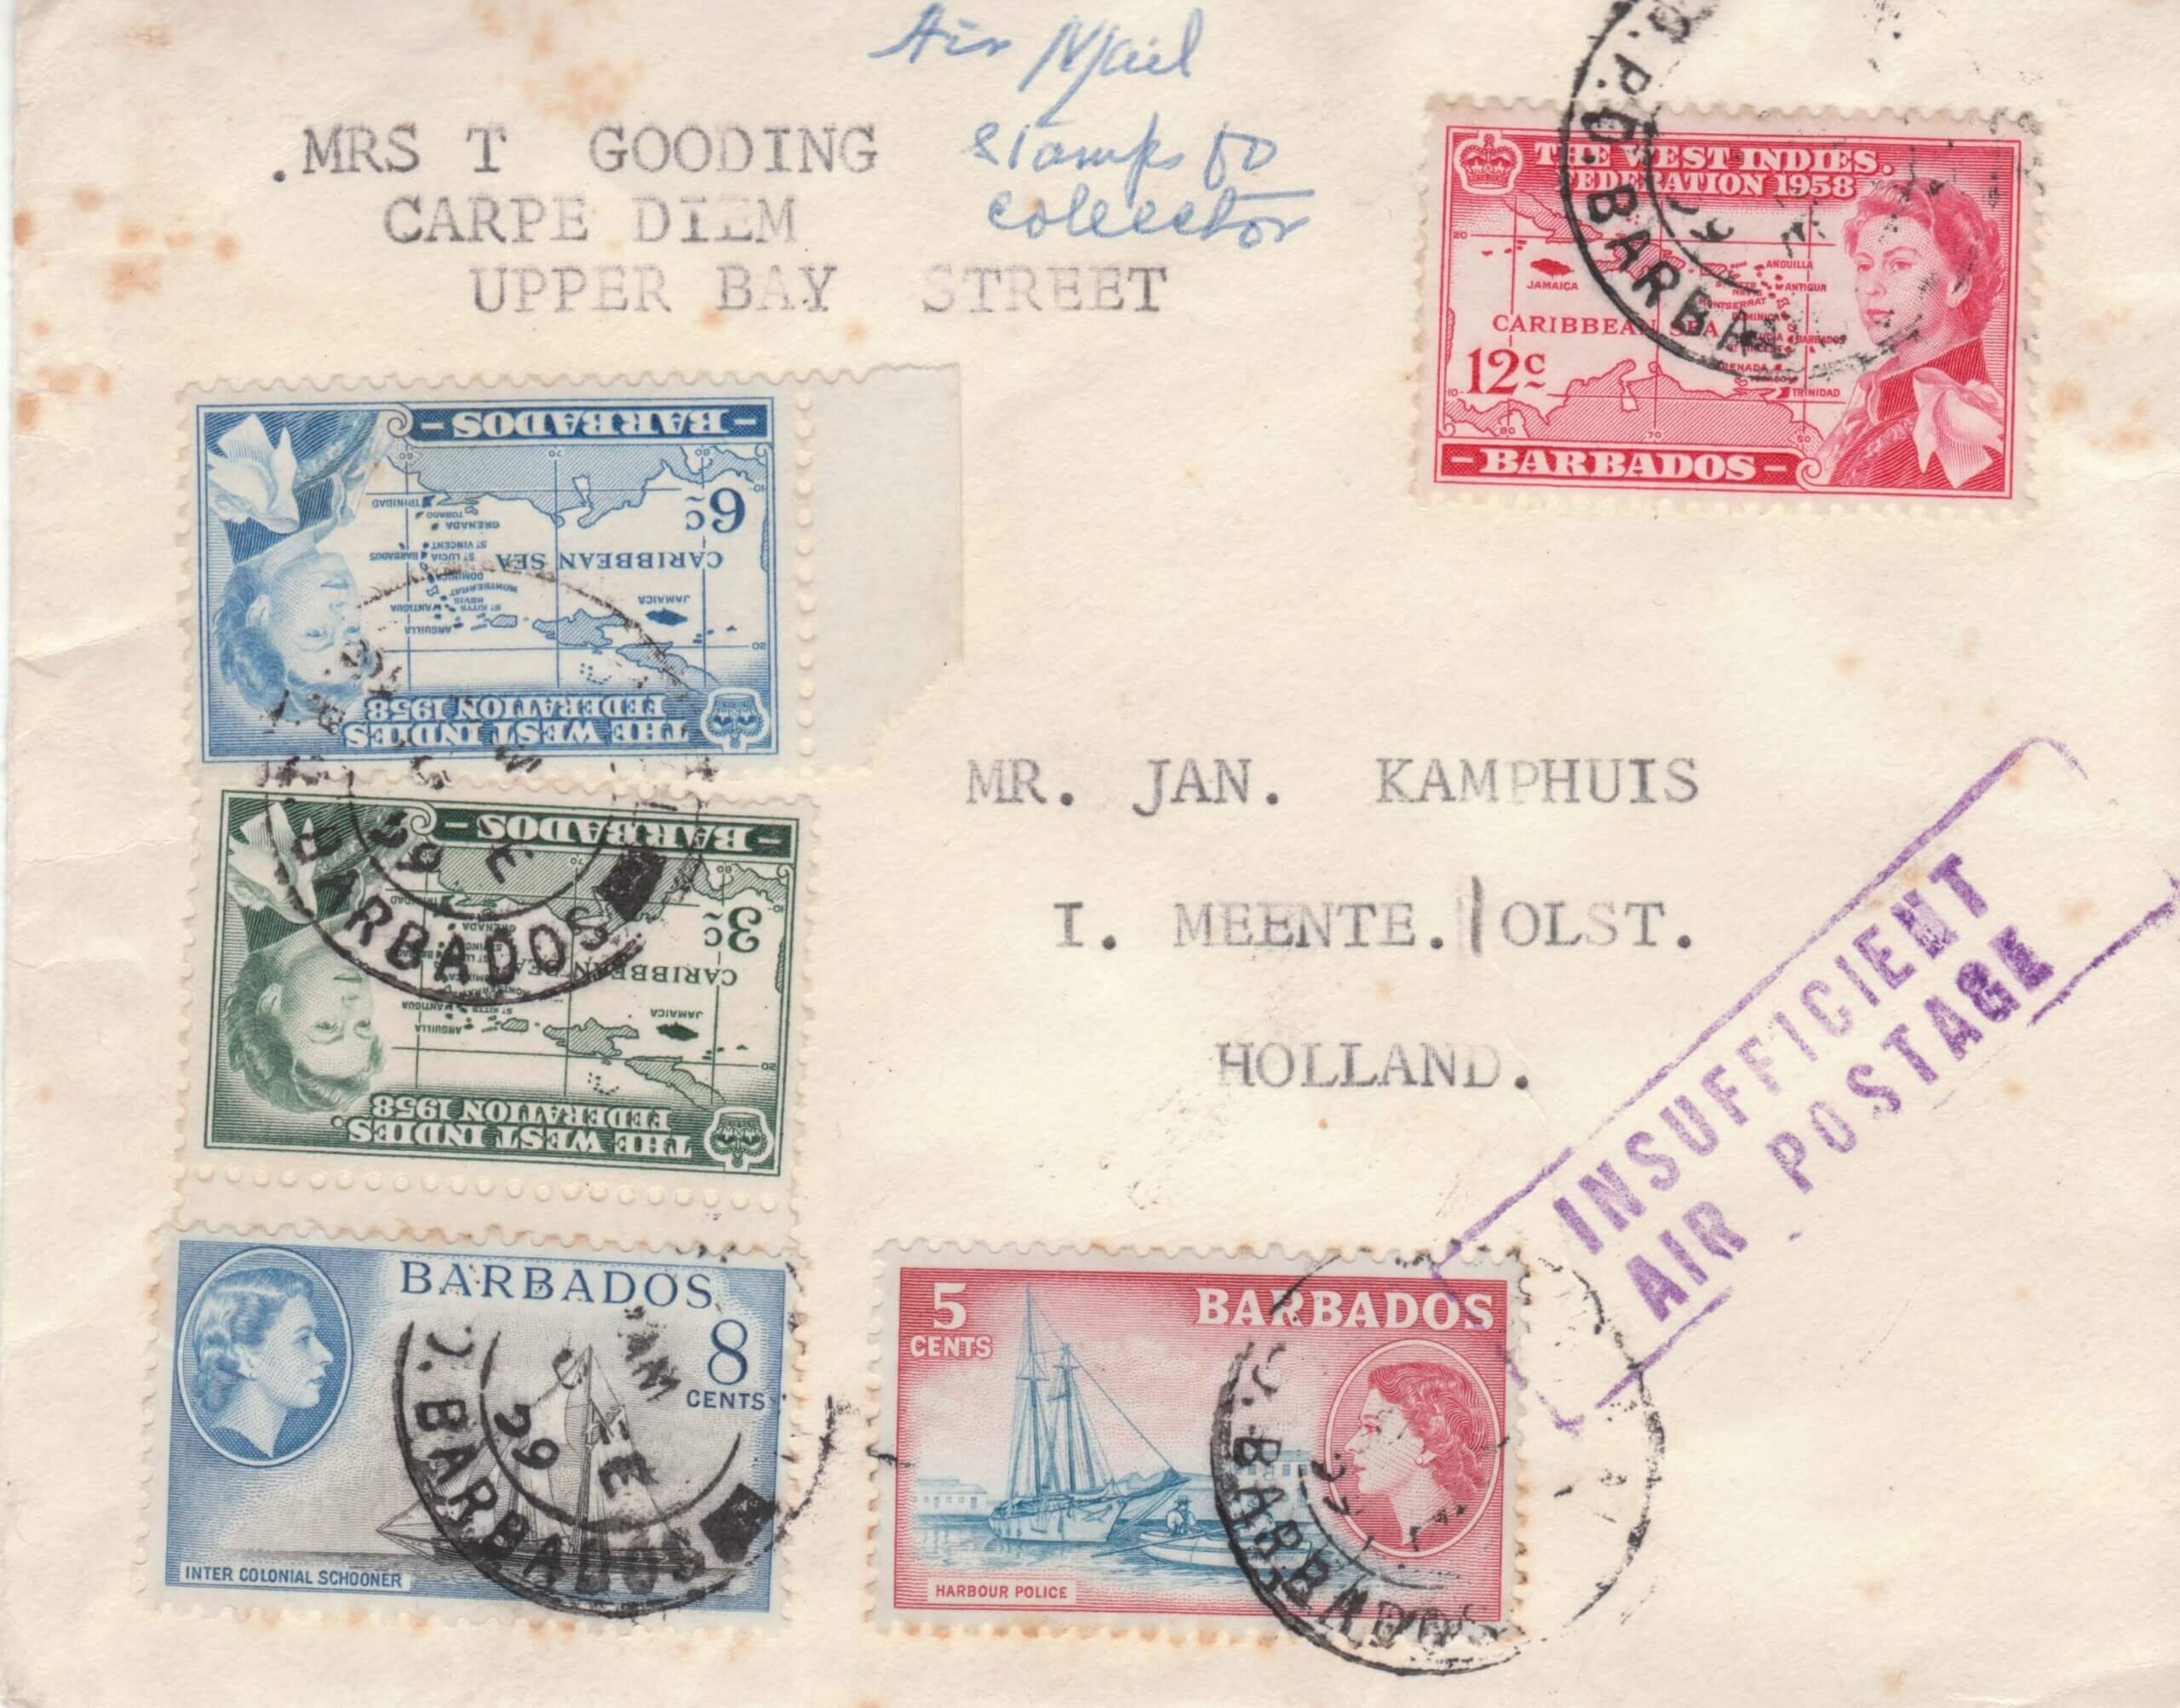 Barbados Insufficient Air Postage cover